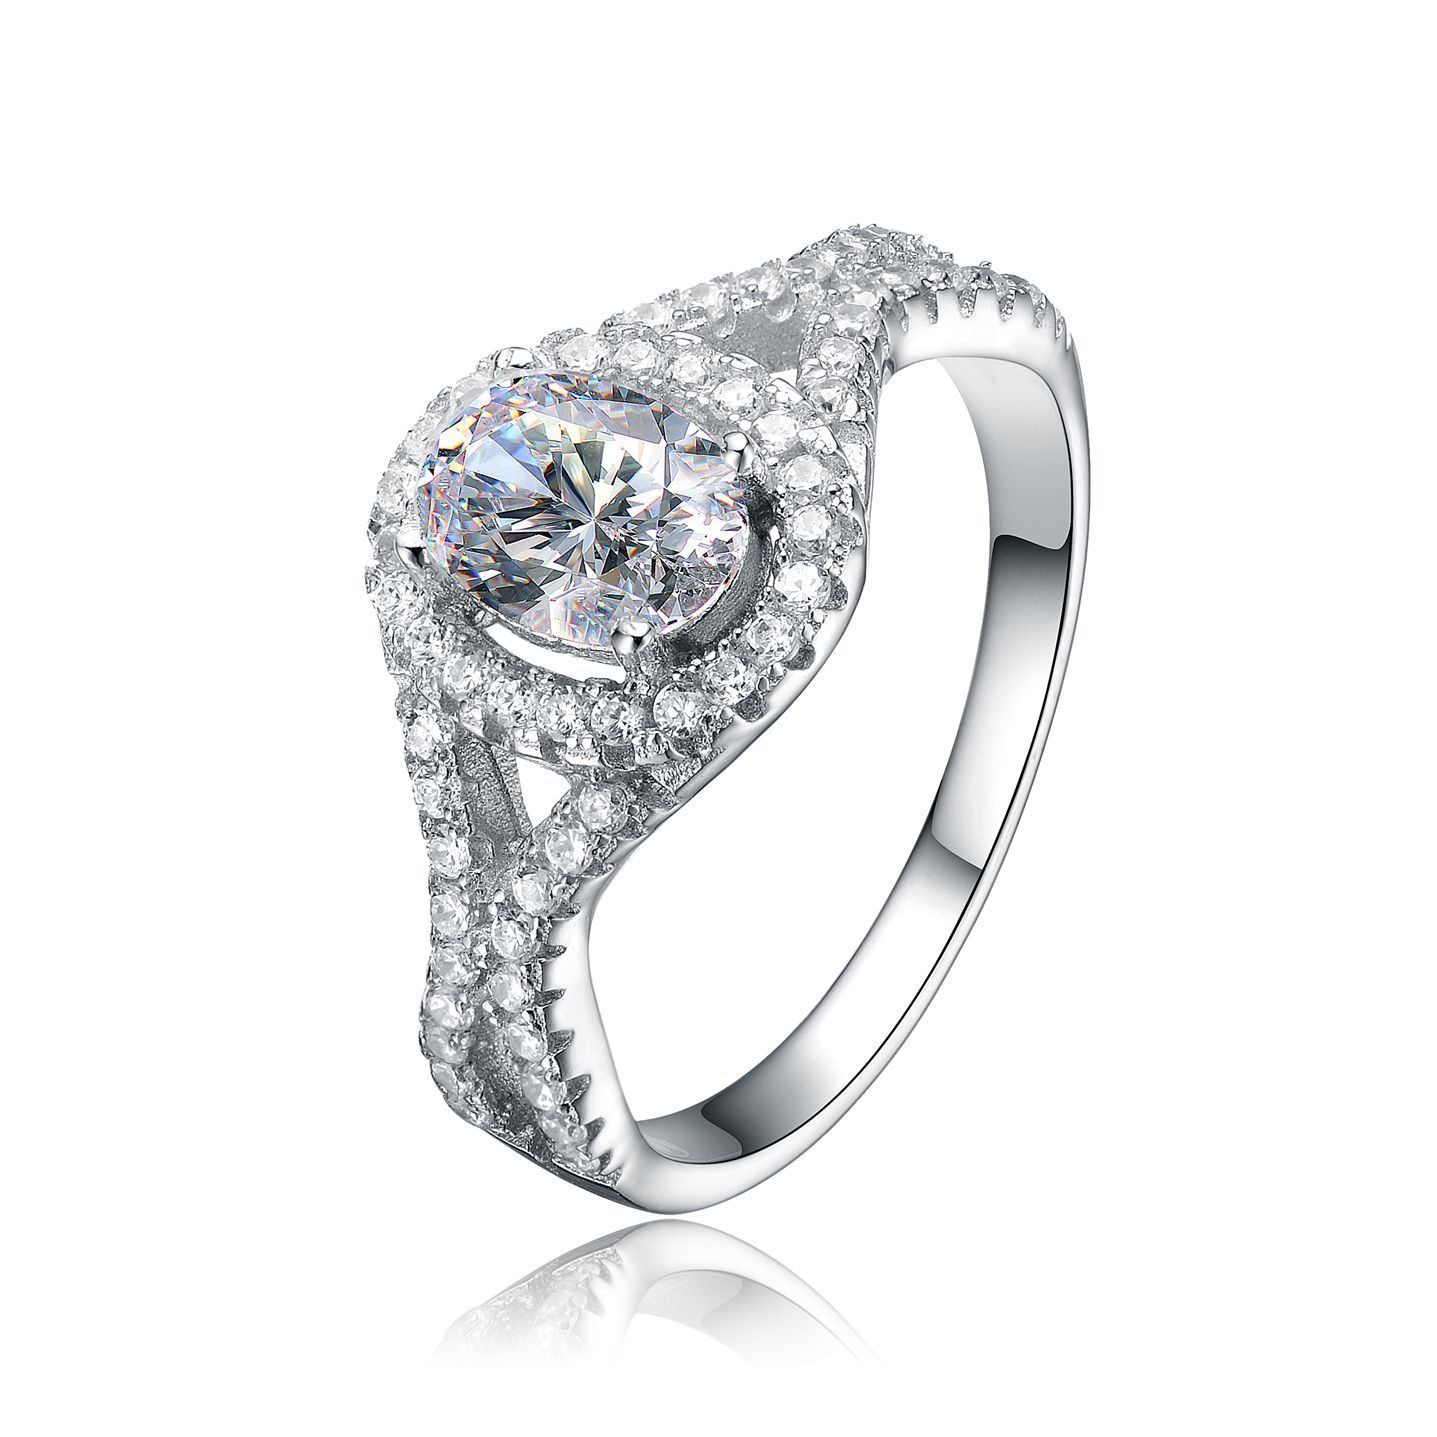 Collette Z Sterling Silver Mounted Cubic Zirconia Solitaire with Halo Ring (Size 8), Women's, White